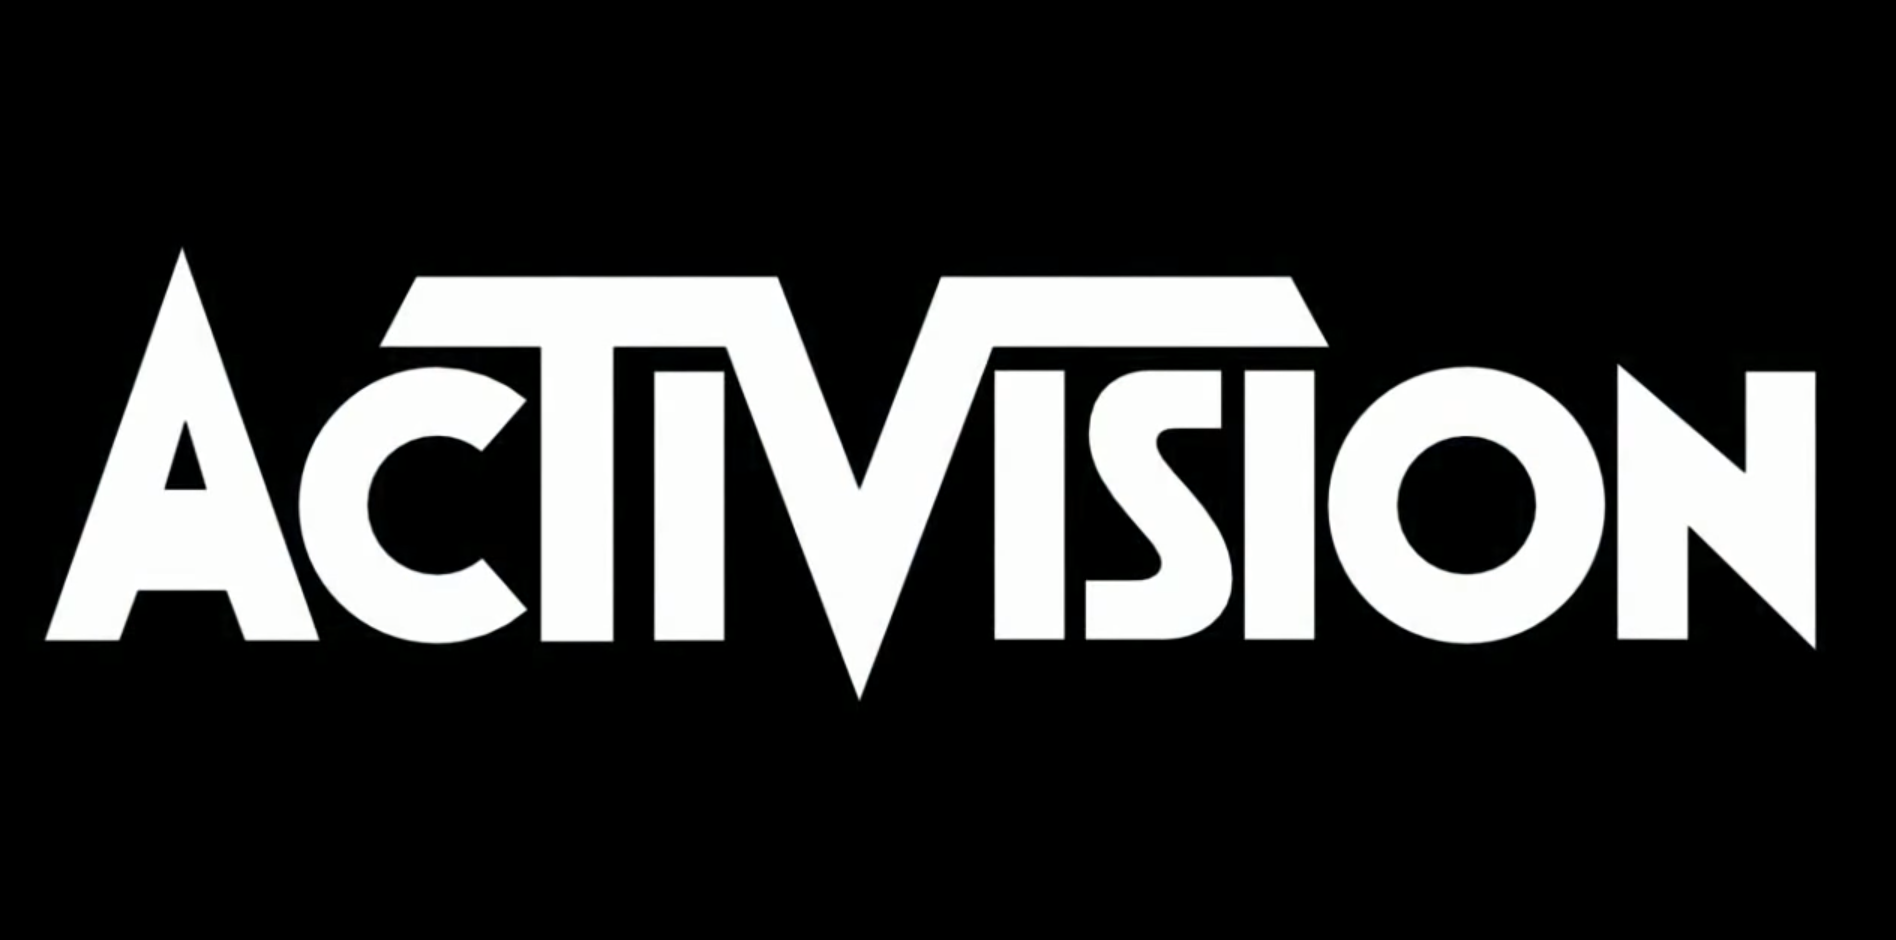 Activision Rumored To Be Creating A Remake Of One Of Their Skating Games Exact Title Unknown Activision Consoles Pcmac Sp Activision Remade Twitter Bio